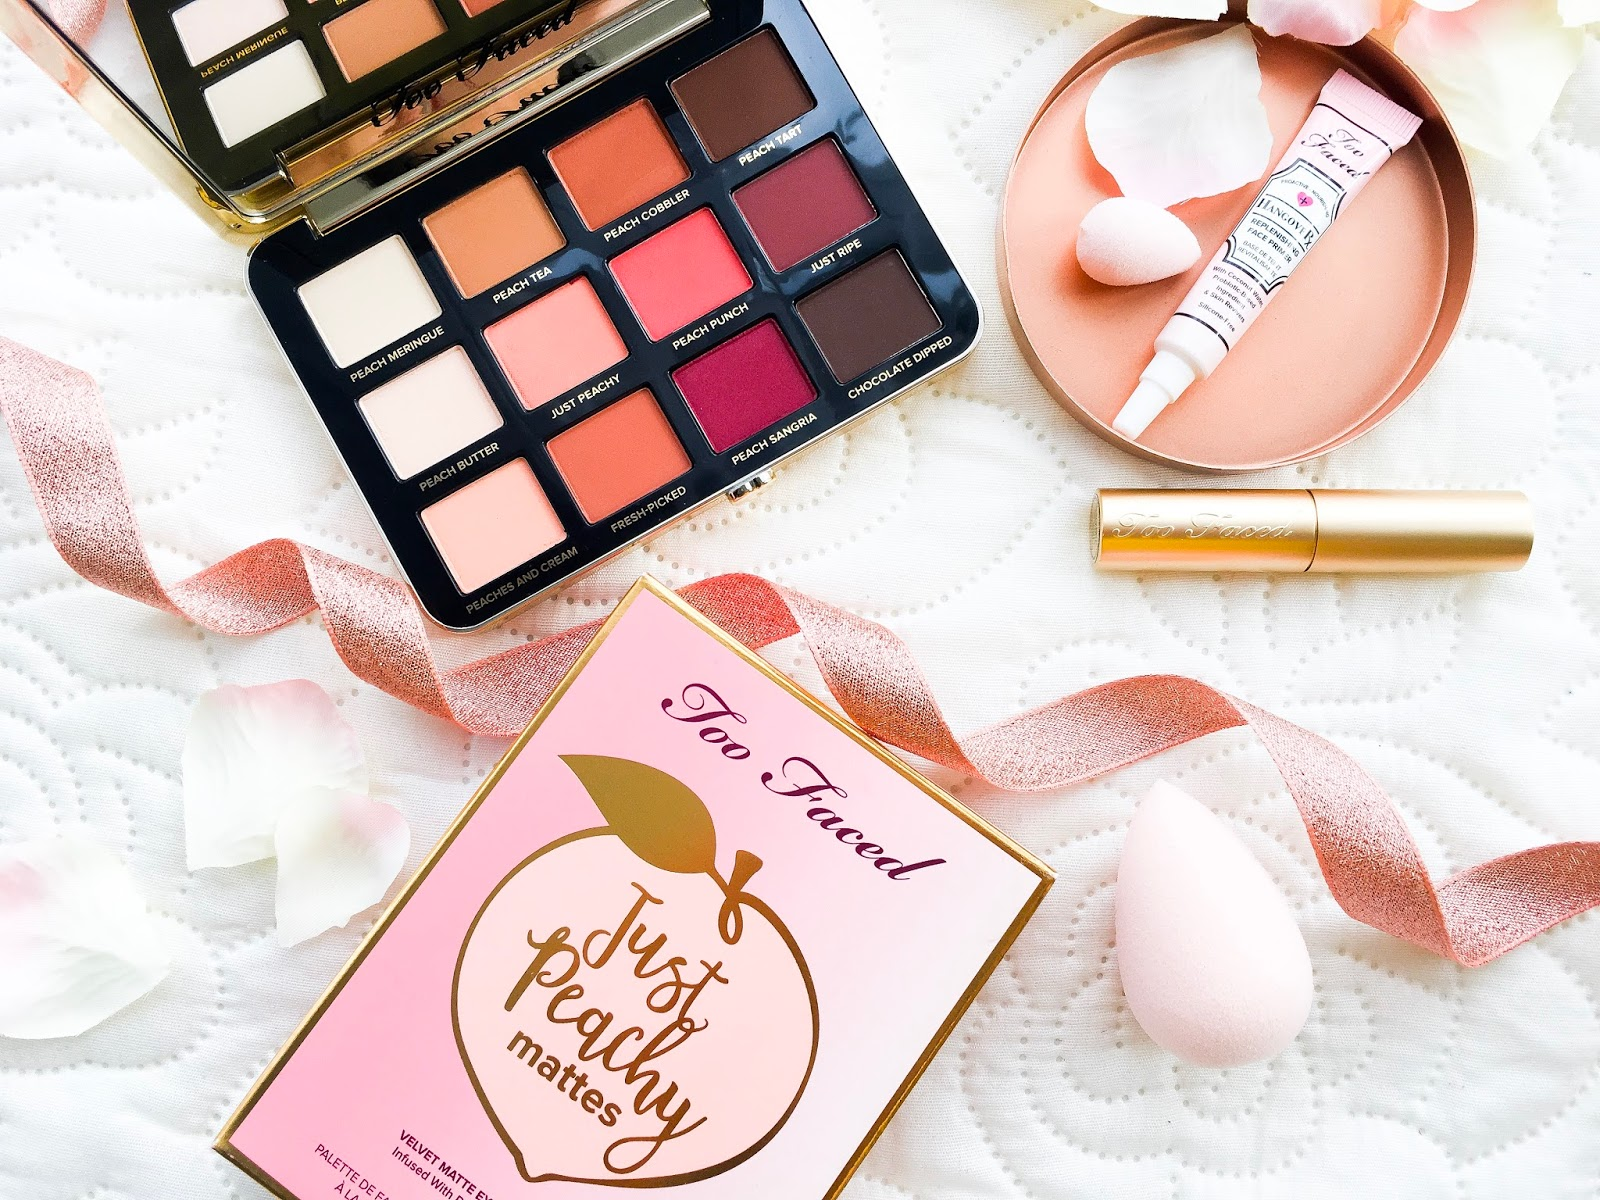 too faced just peachy mattes eyeshadow palette, too faced just peachy mattes review, too faced just peachy mattes uk, too faced just peachy mattes review and swatches